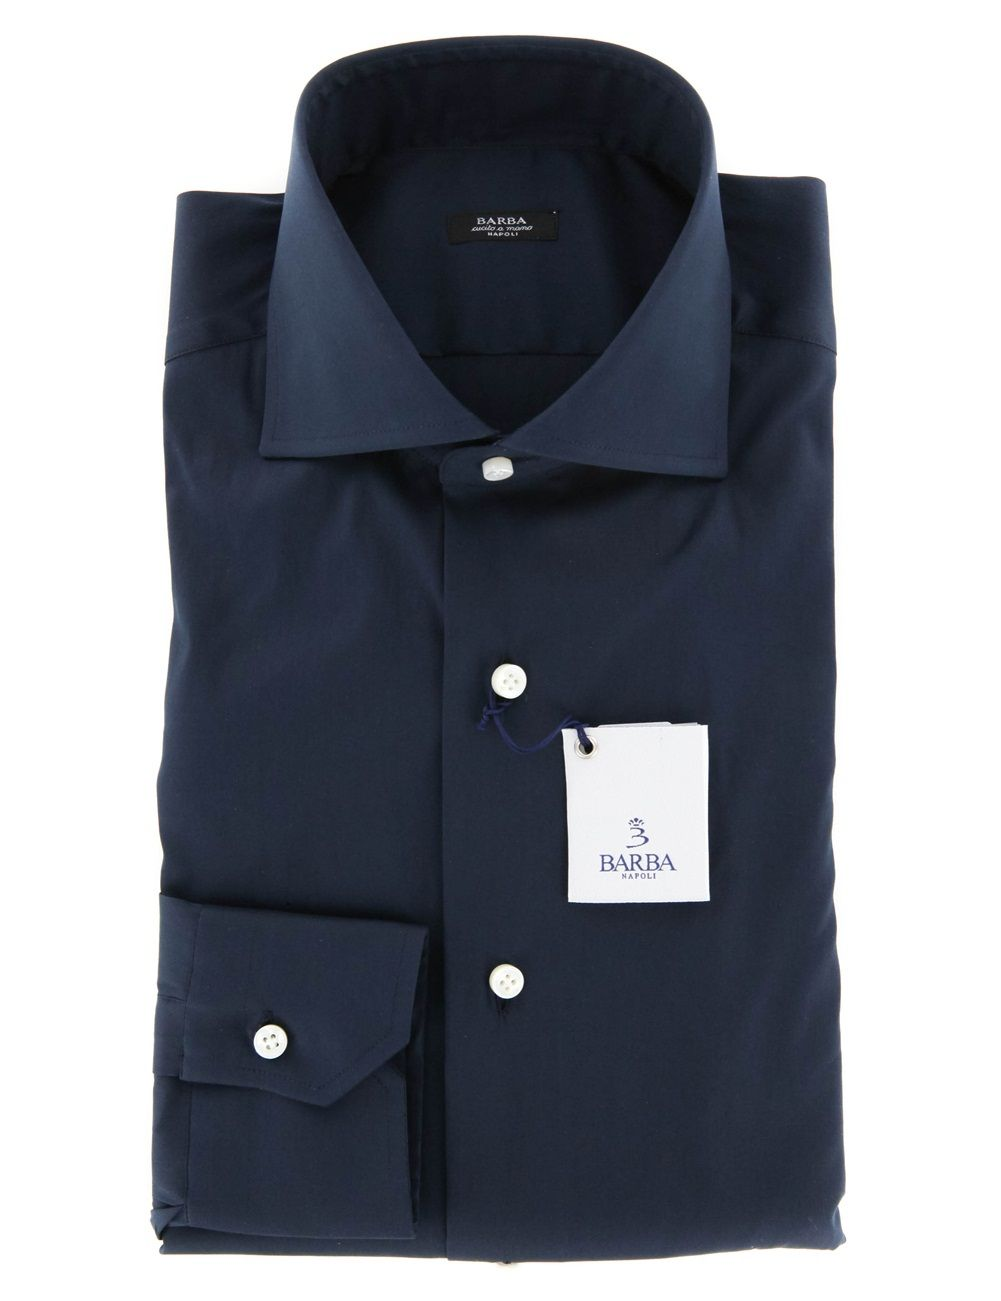 Barba Napoli Navy Blue Shirt - 15.5 US / 39 EU. Click here for more Barba Napoli Men's Shirts http://www.shopthefinest.com/nsearch.aspx?Brand=Barba%20Napoli